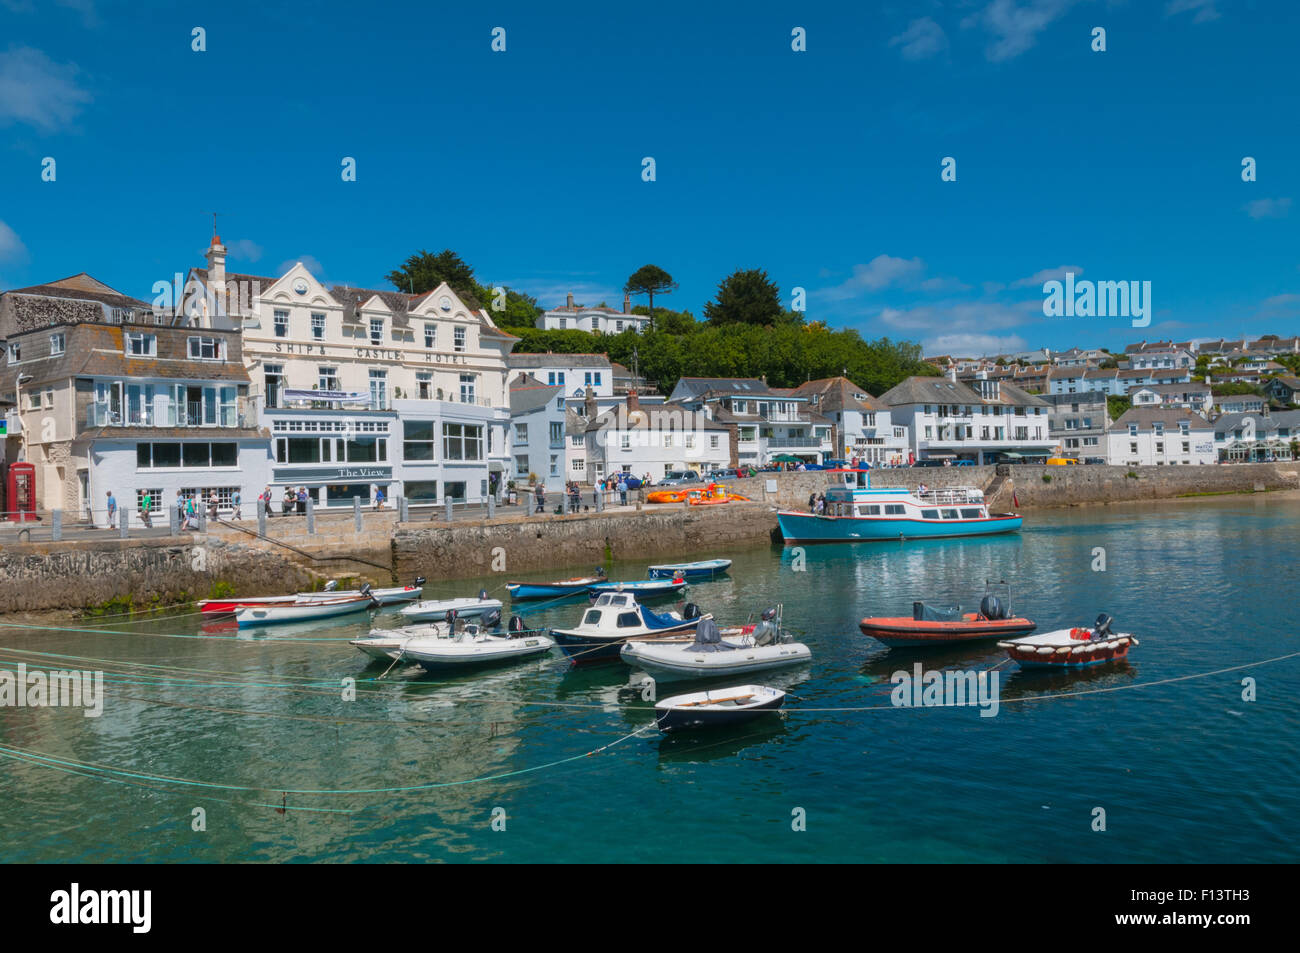 Boats in St Mawes Harbour St Mawes Cornwall England 06/20111 - Stock Image